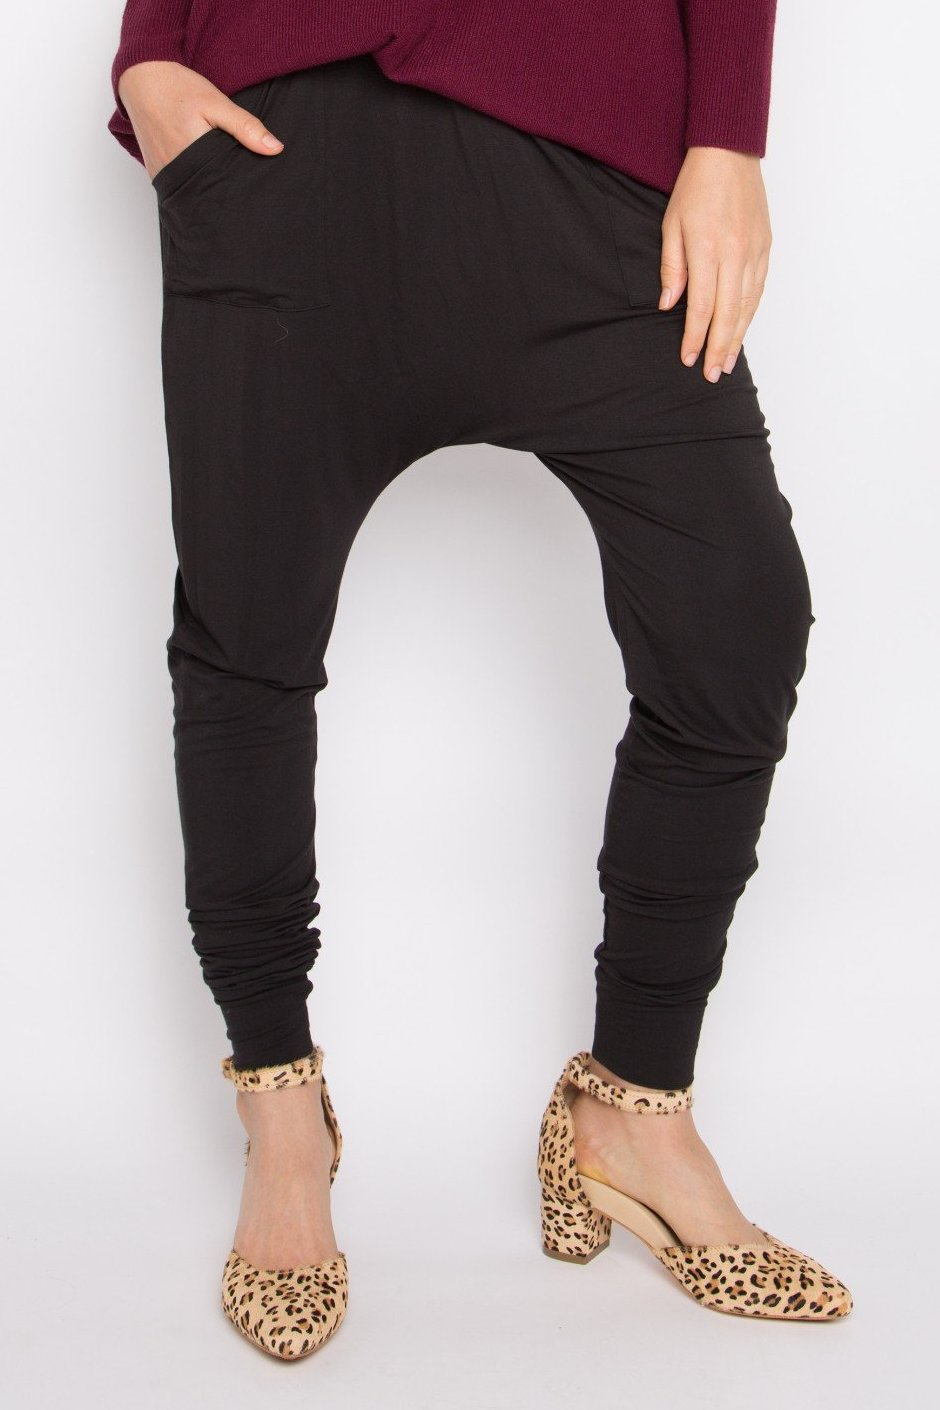 Bamboo Cuffed Droppy Pant in Black